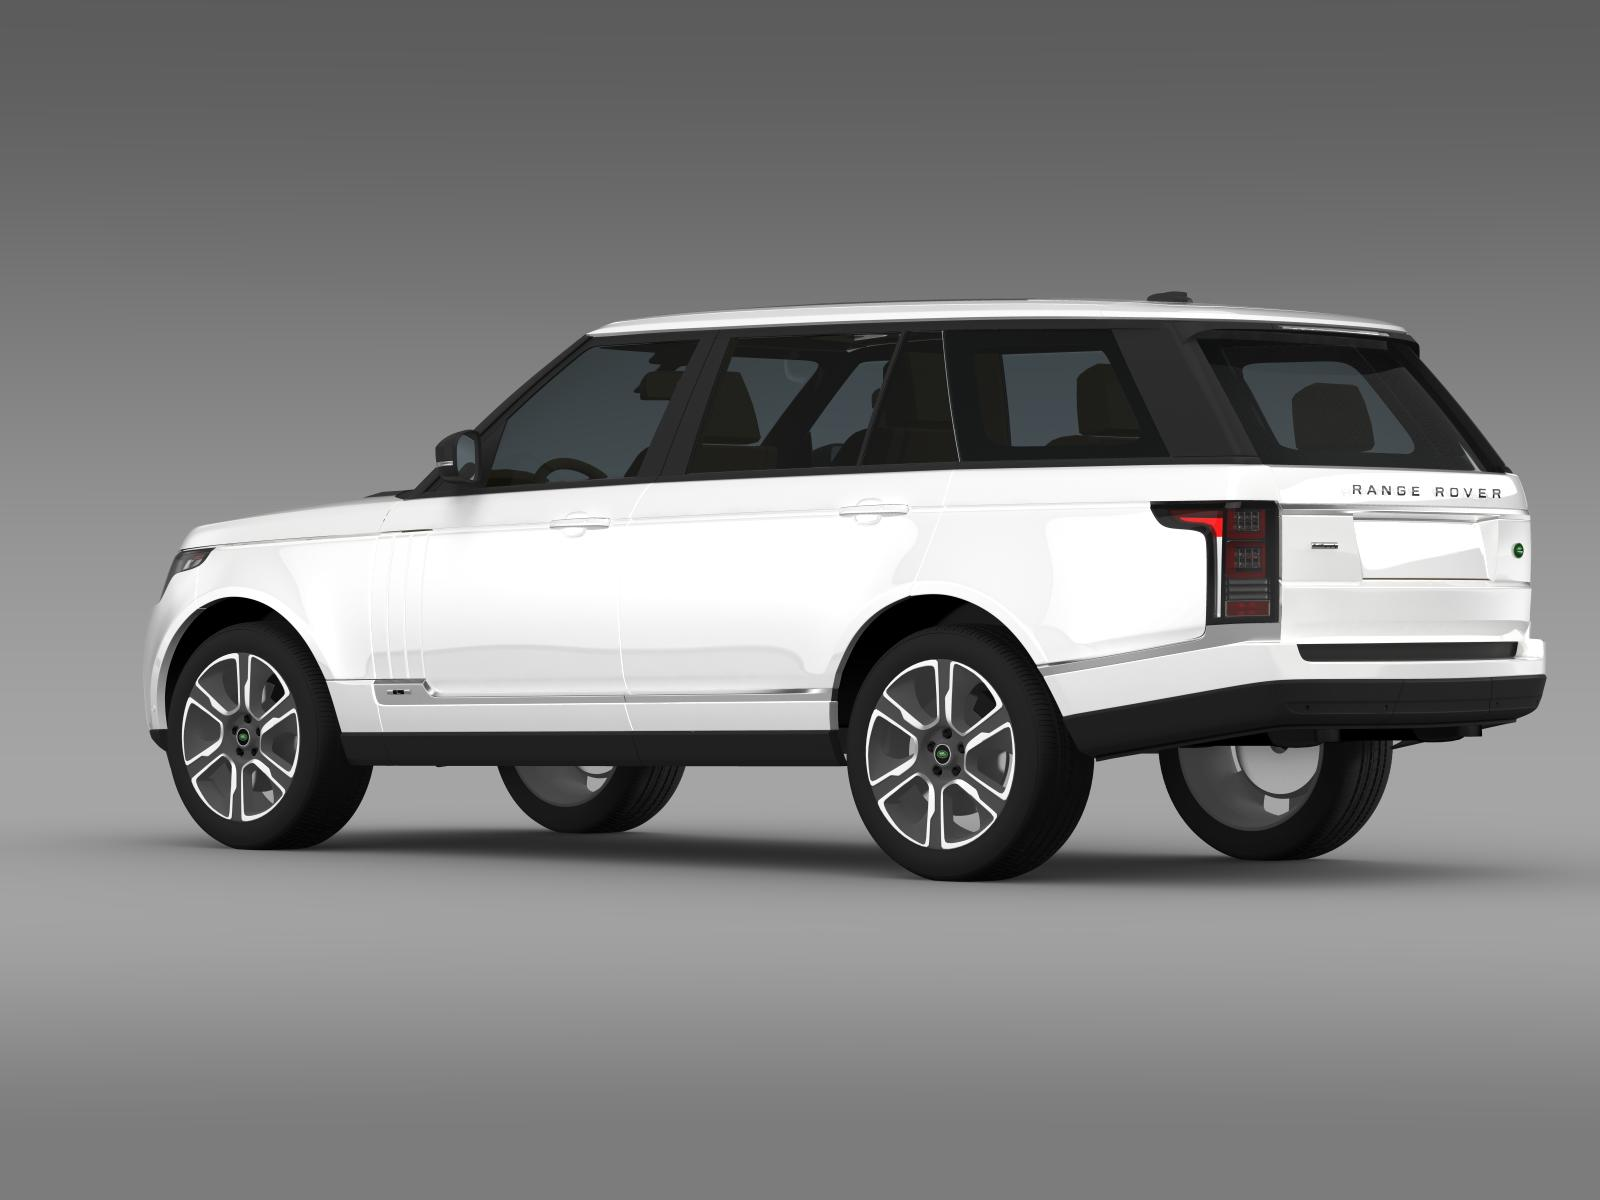 range rover hybrid lwb l405 3d model buy range rover hybrid lwb l405 3d model flatpyramid. Black Bedroom Furniture Sets. Home Design Ideas